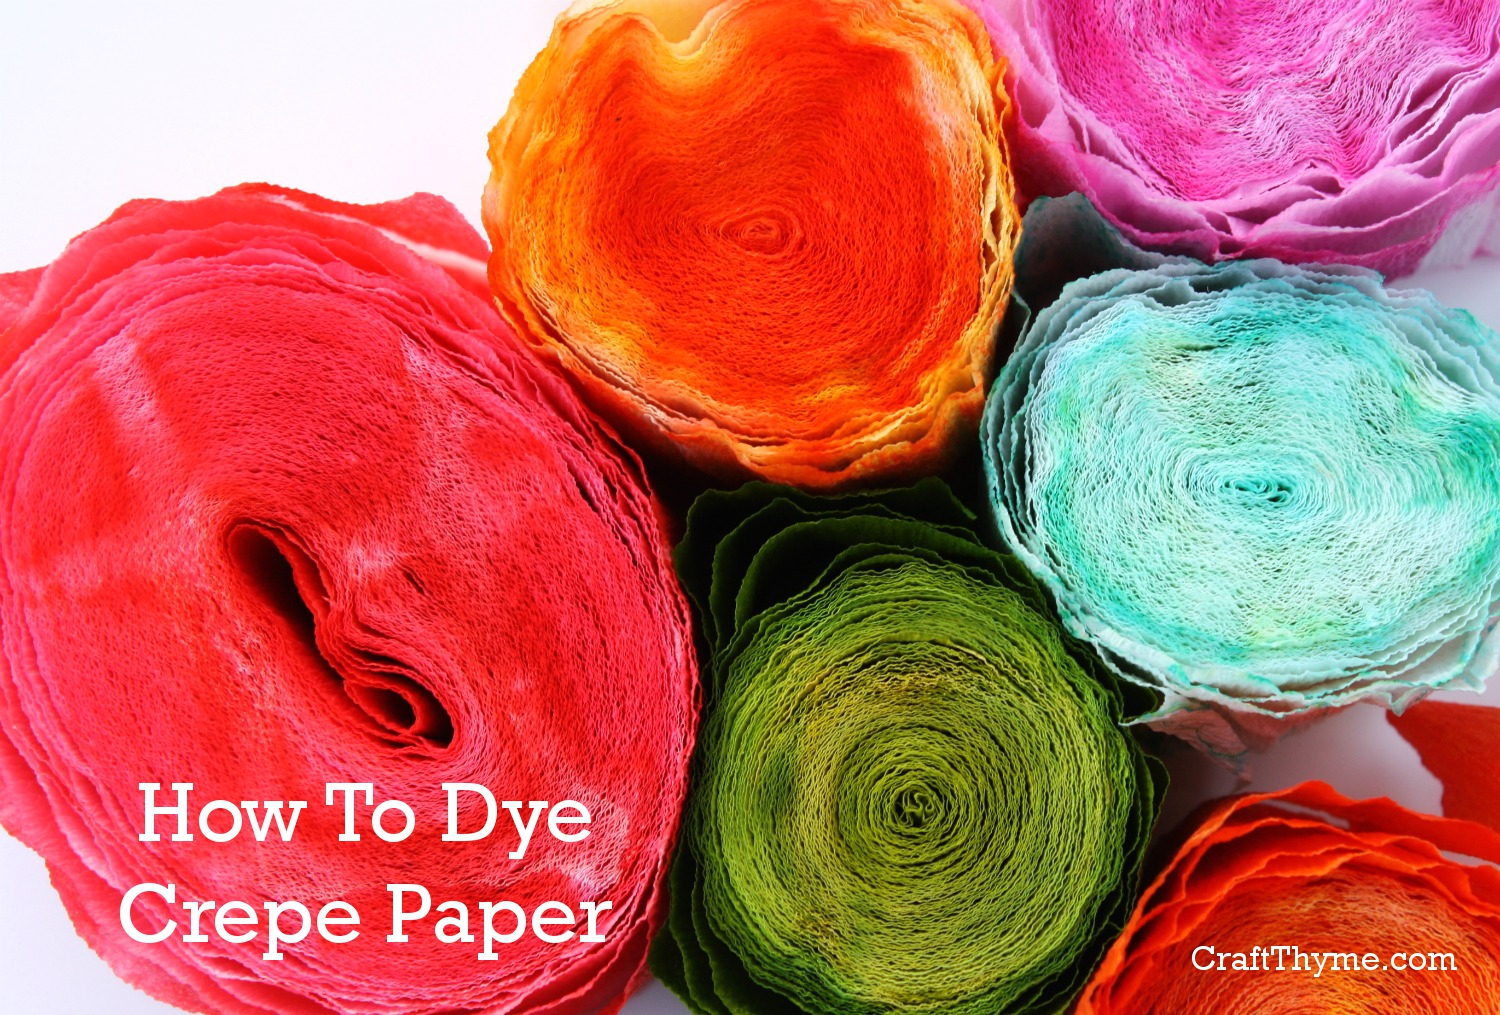 How to Dye Crepe Paper